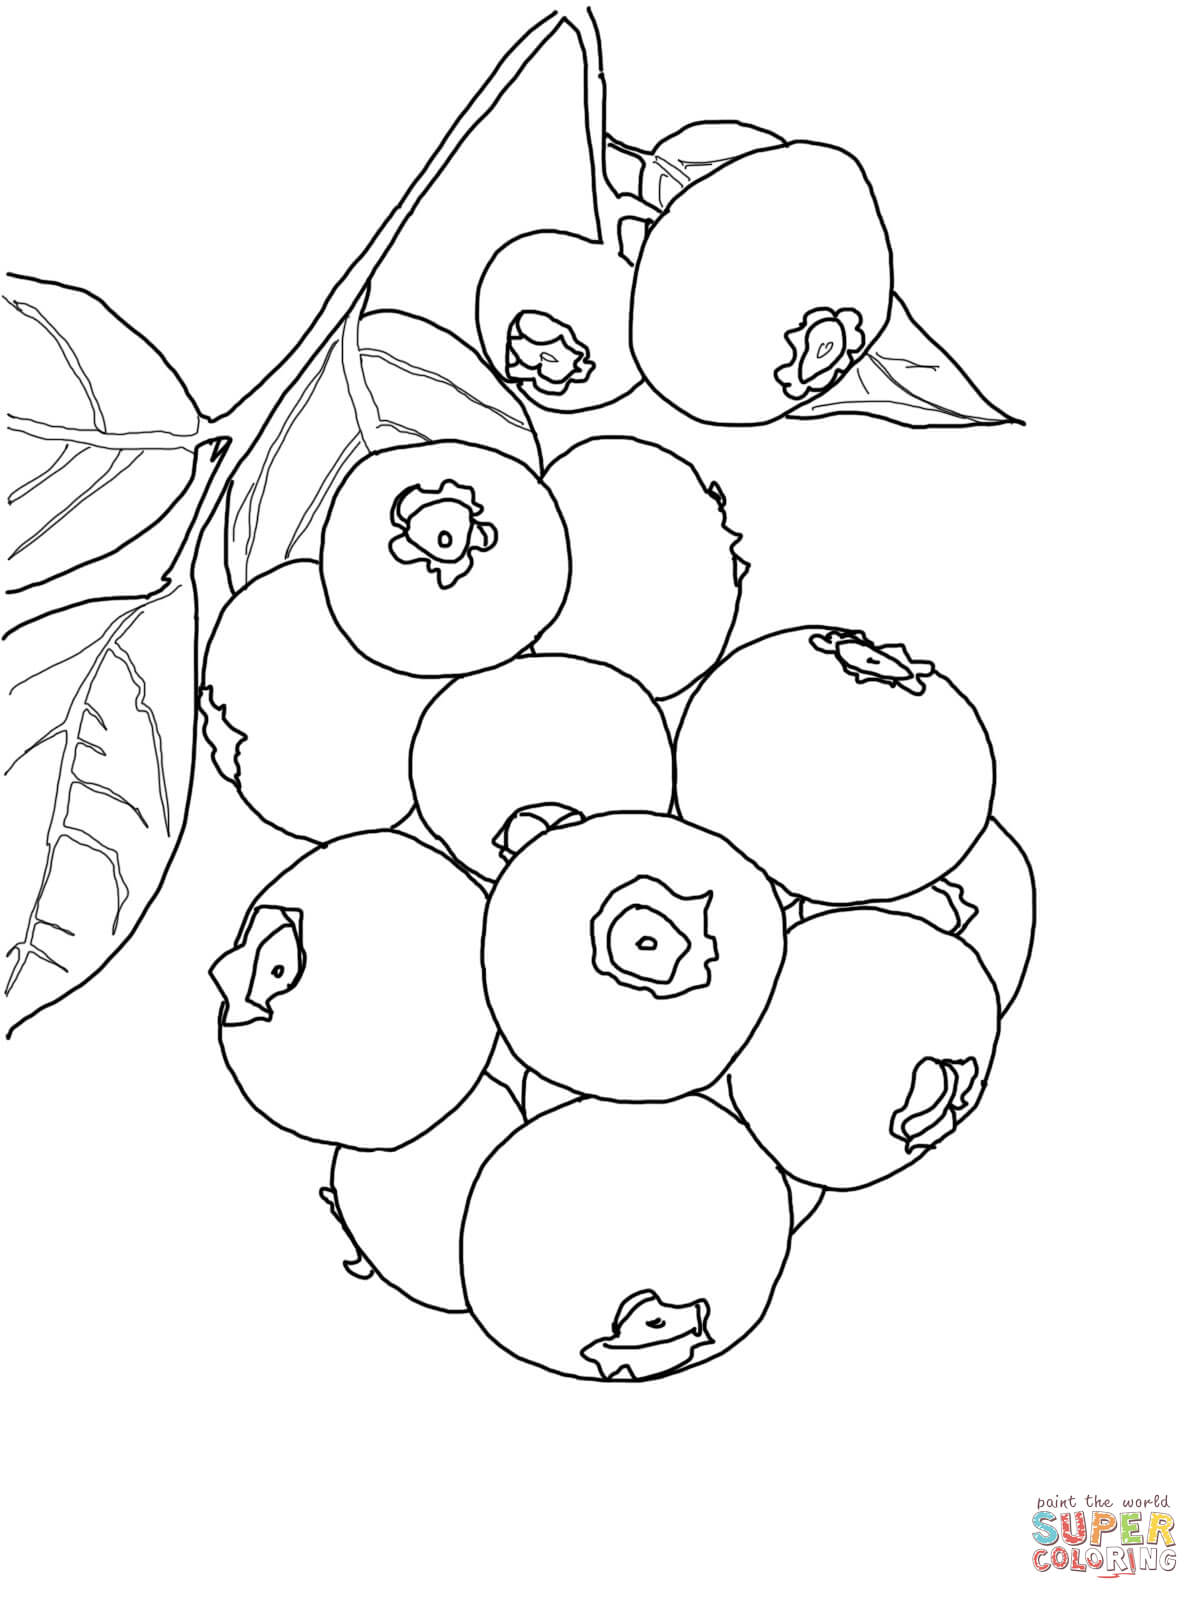 blueberry coloring page blueberry branch coloring page free printable coloring pages page coloring blueberry